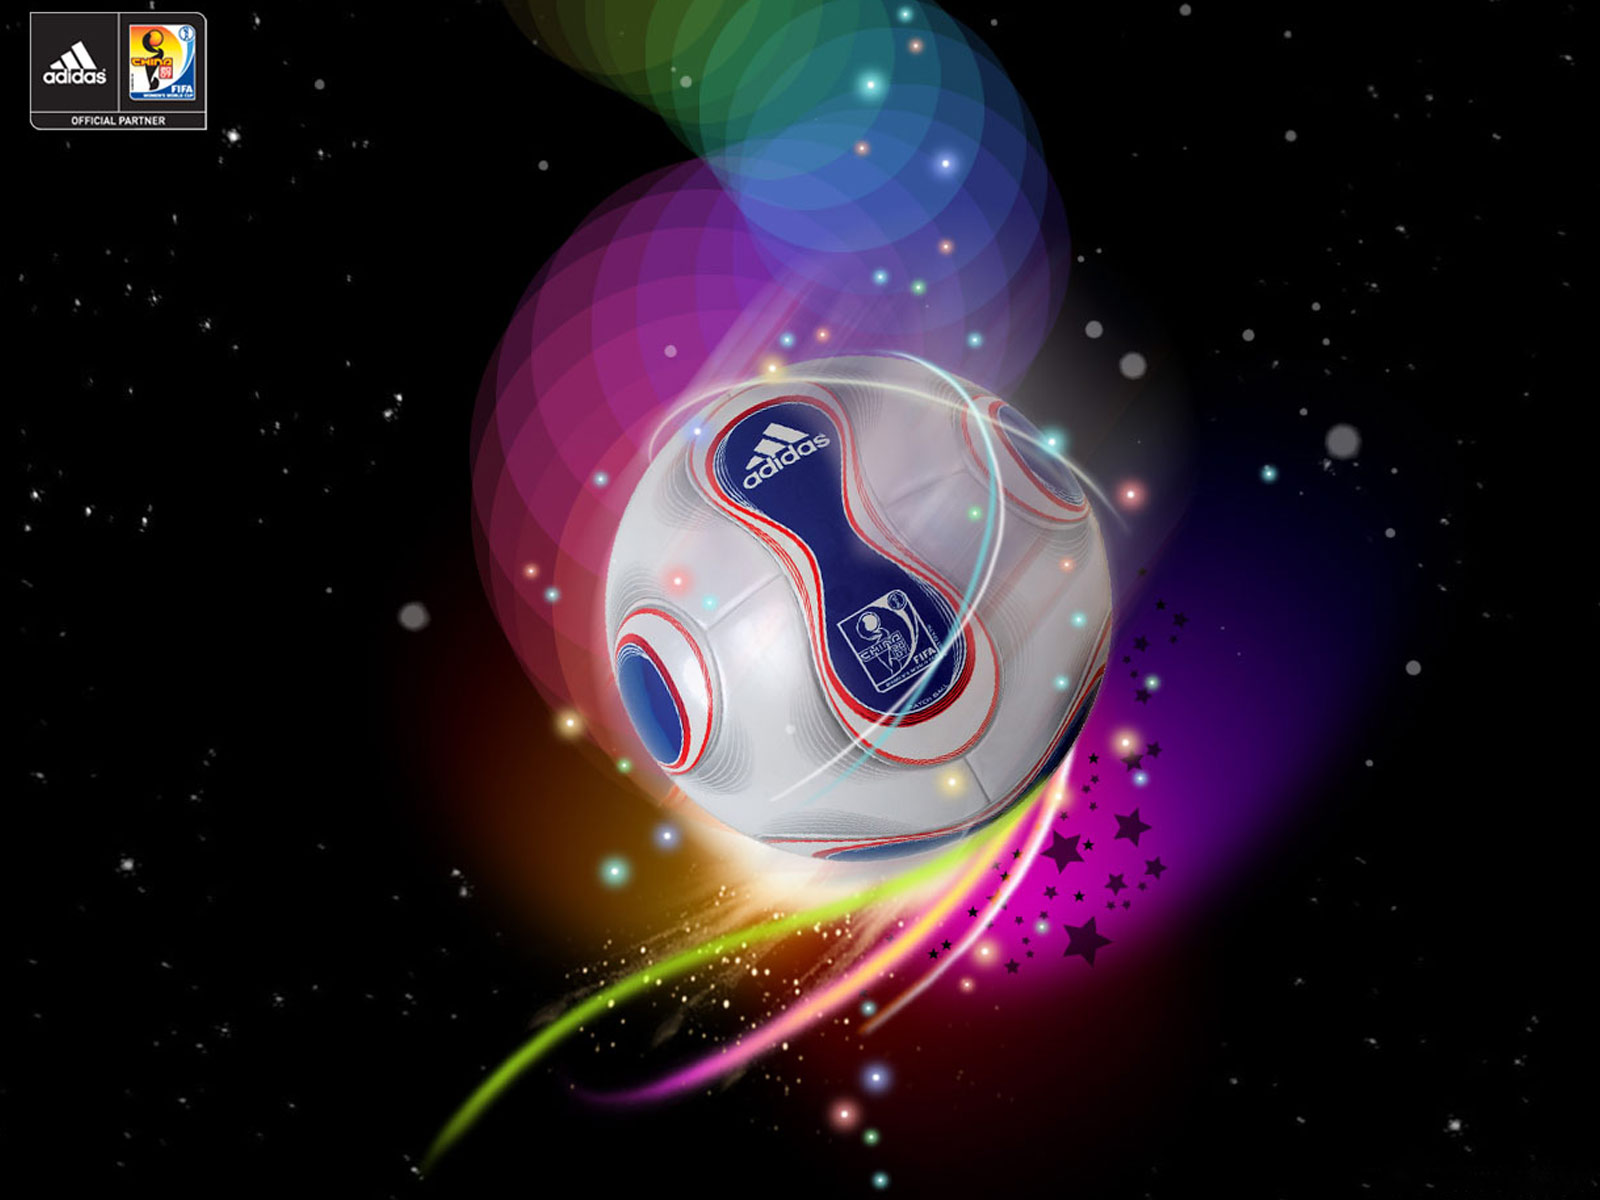 soccer wallpapers soccer wallpapers soccer wallpapers soccer 1600x1200